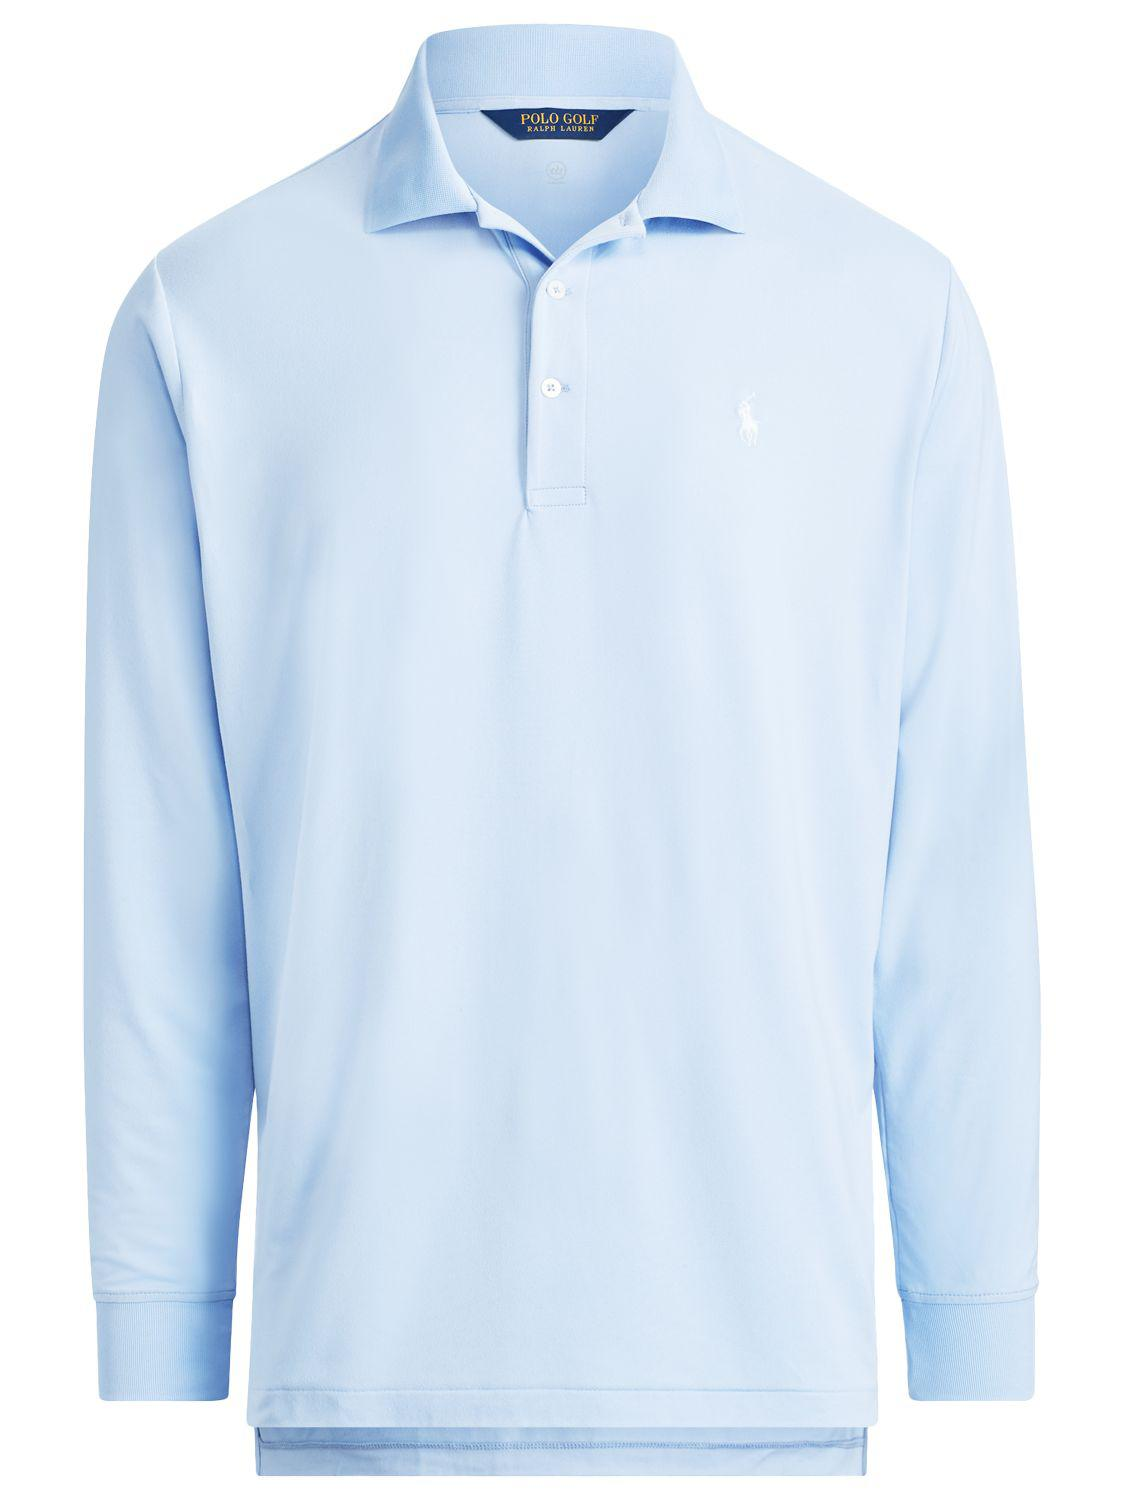 0154a82ff Ralph Lauren Polo Golf By Lightweight Interlock Long Sleeve Polo ...